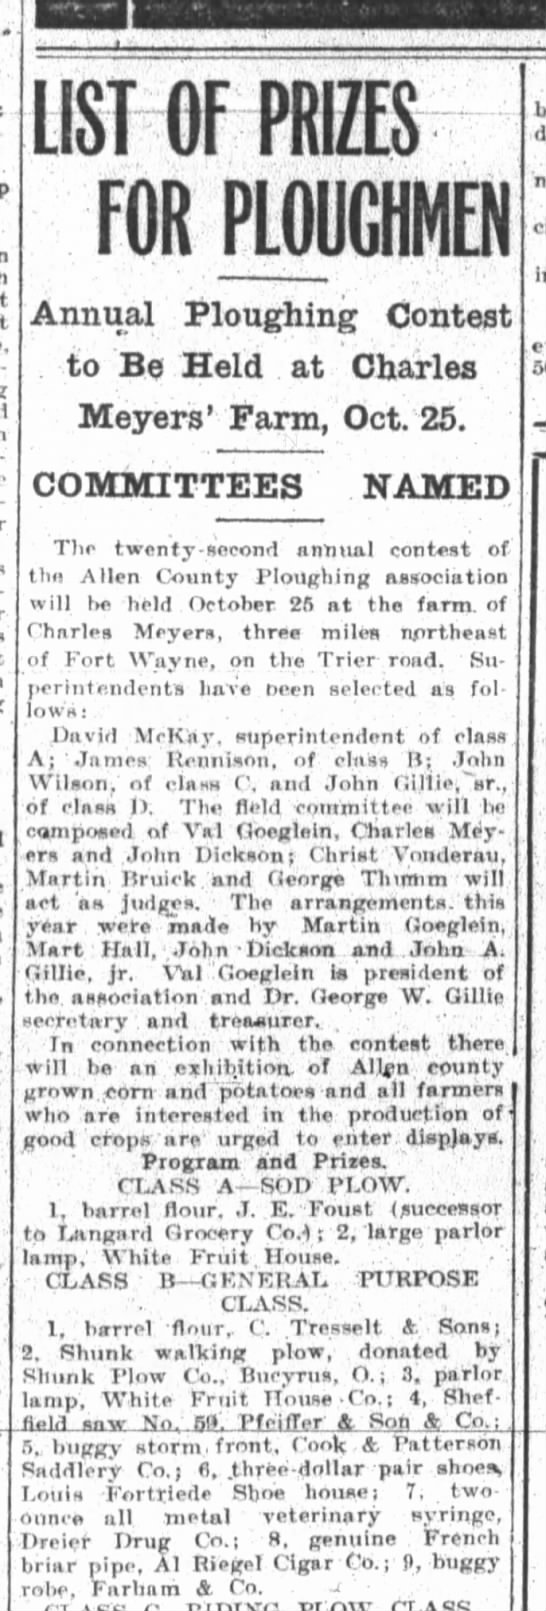 Louis Fortriede, The Fort Wayne Sentinel, Th. Oct. 10, 1912 p.10 - ' LIST OF PRIZES FOR PLOUGHMEN Annual Ploughing...